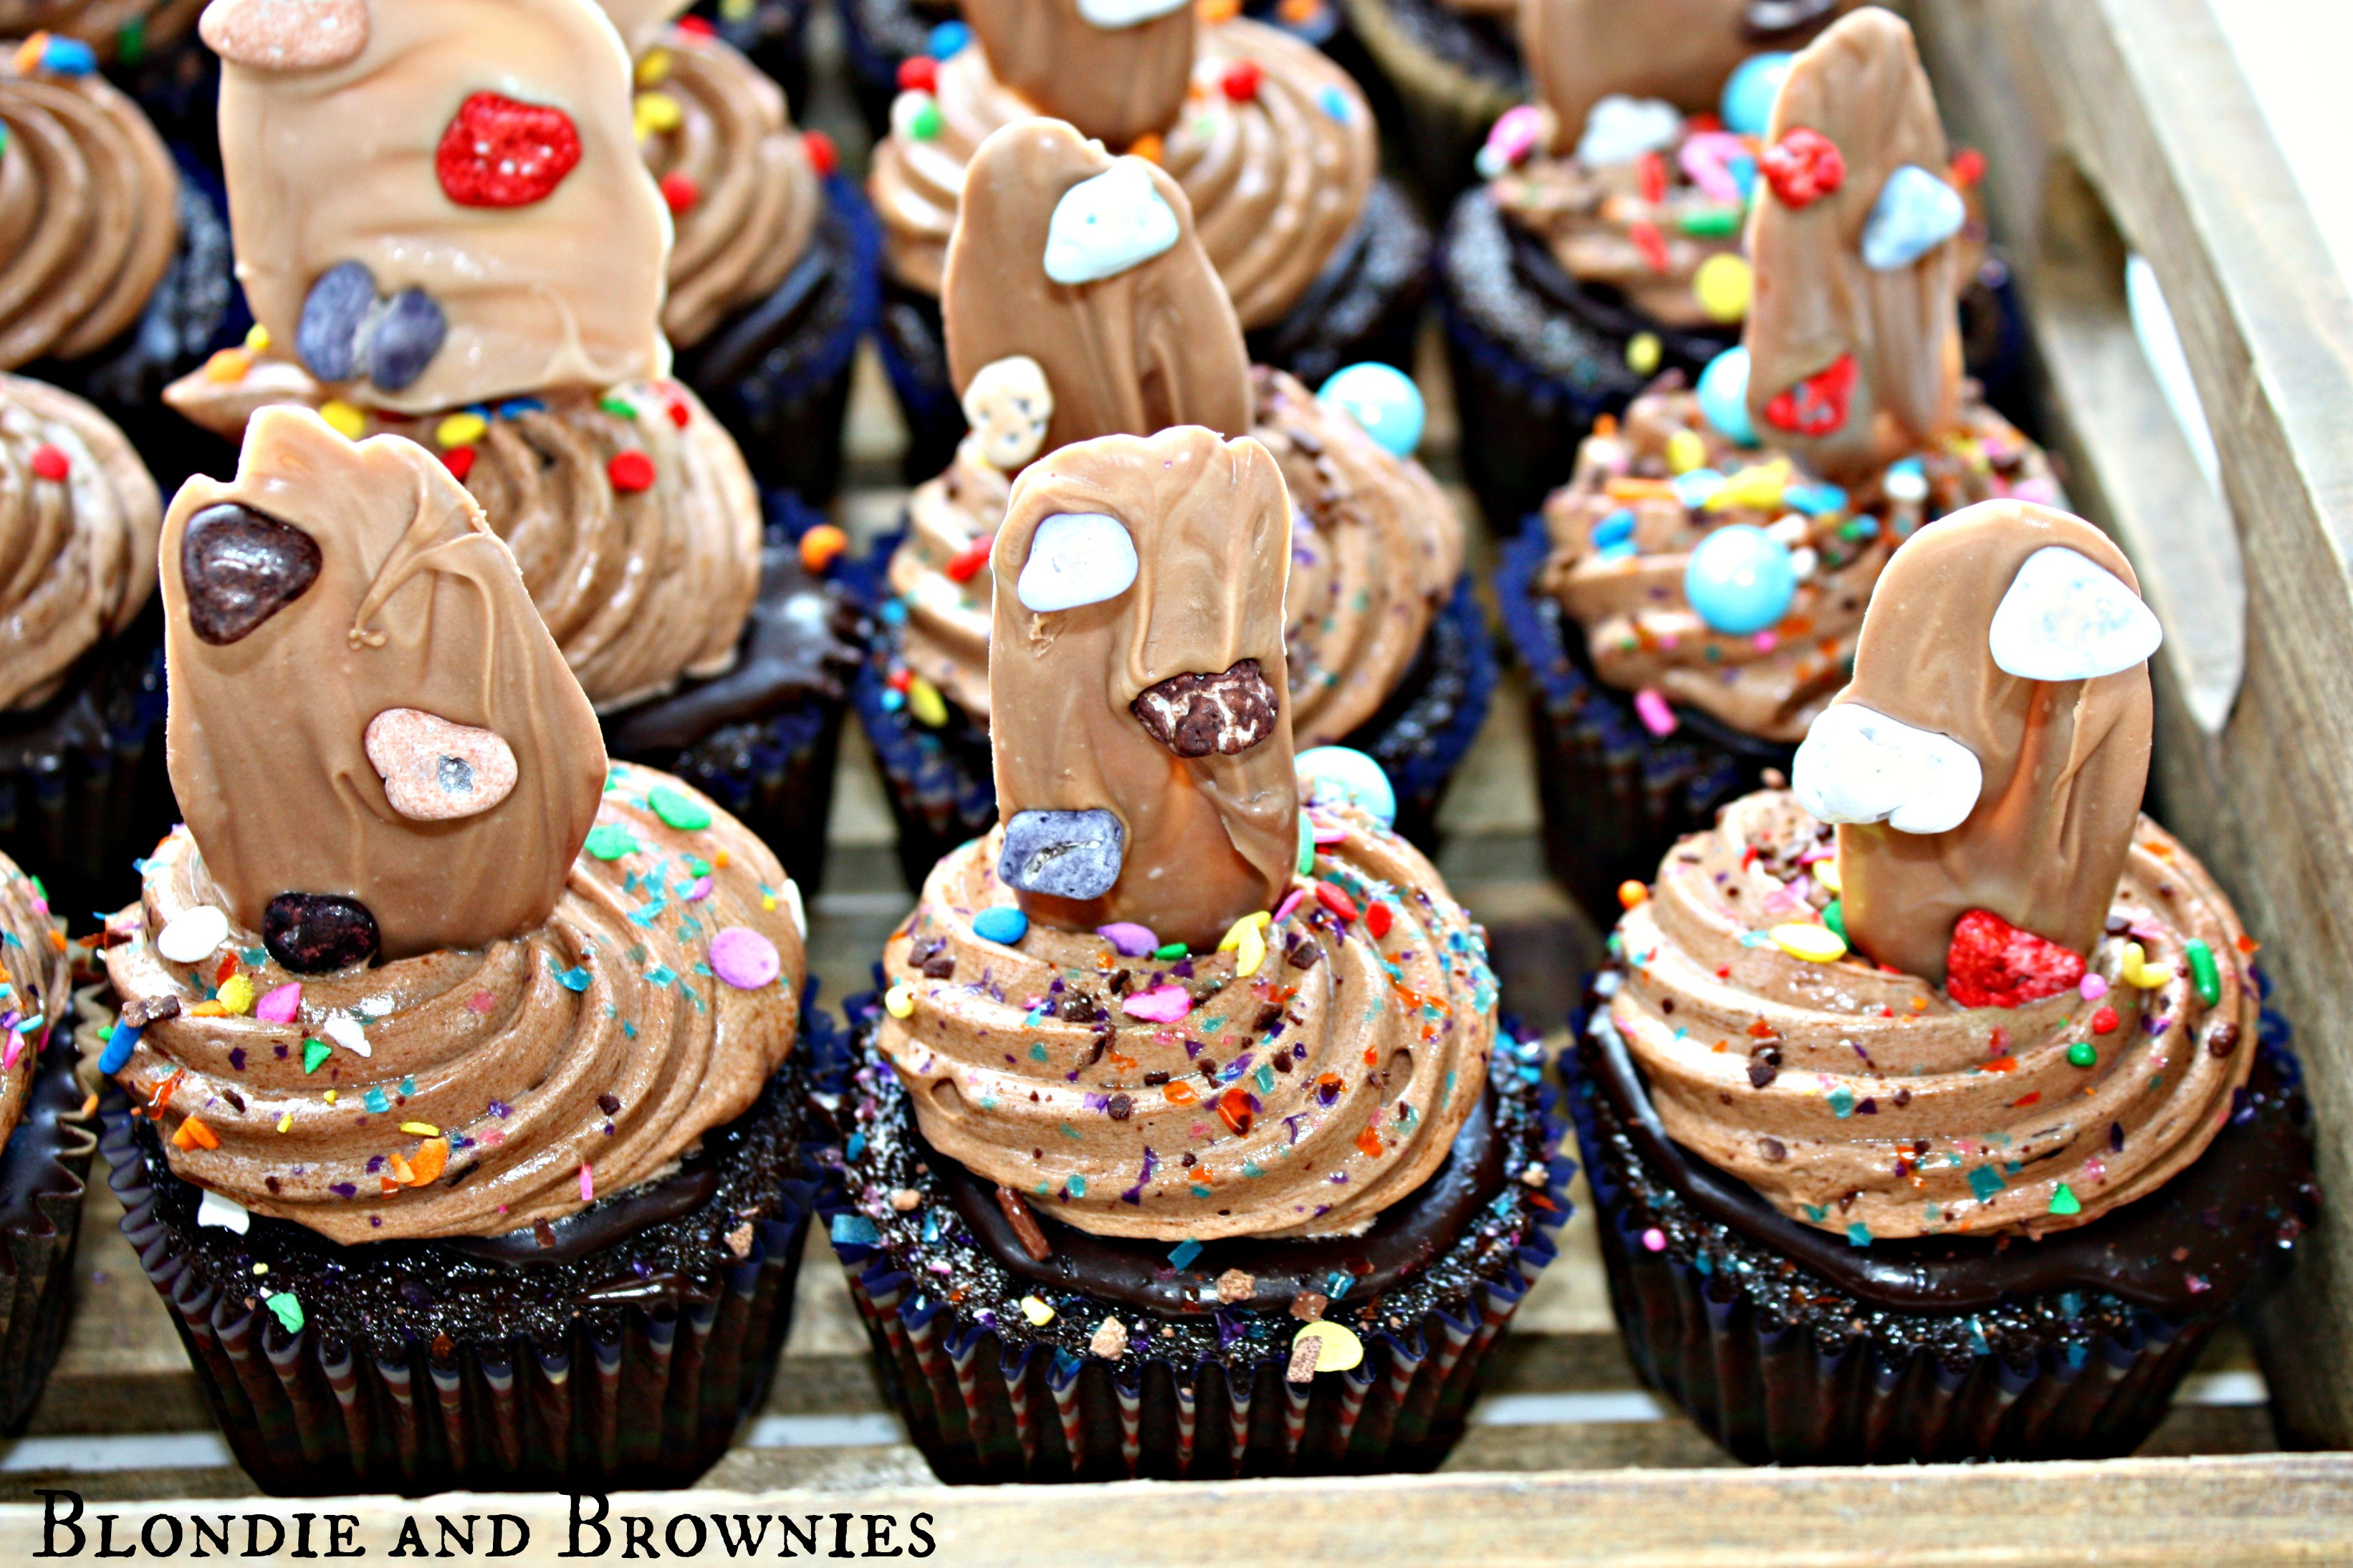 Best ideas about Rock Climbing Birthday Party . Save or Pin Rock Climbing Party with Cupcakes – Blon and Brownies Now.